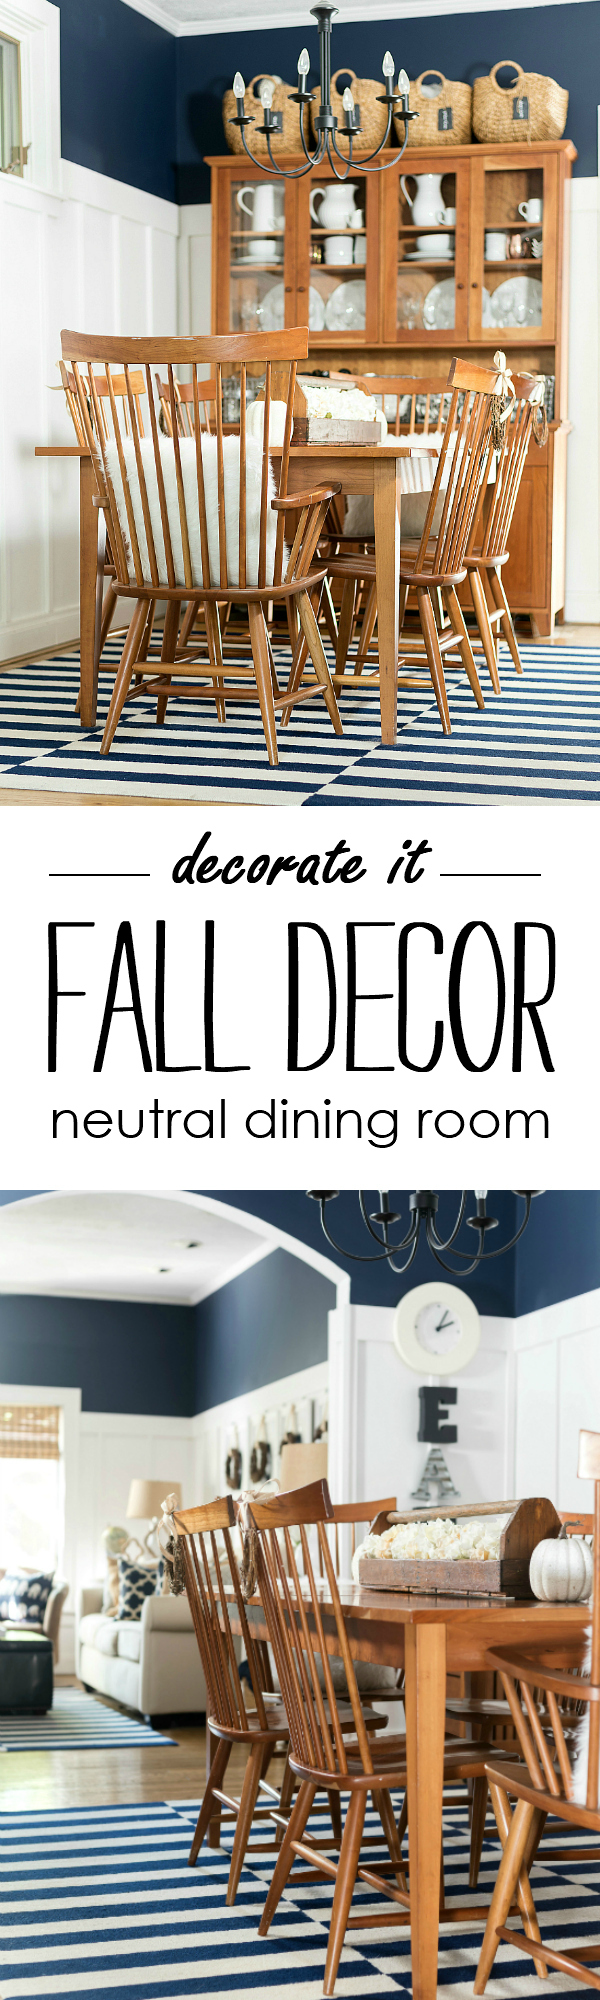 Fall Dining Room Decor - Fall Decorating in Neutrals - Navy, White, Neutrals for Fall @ITALLSTARTEDWITHPAINT.com